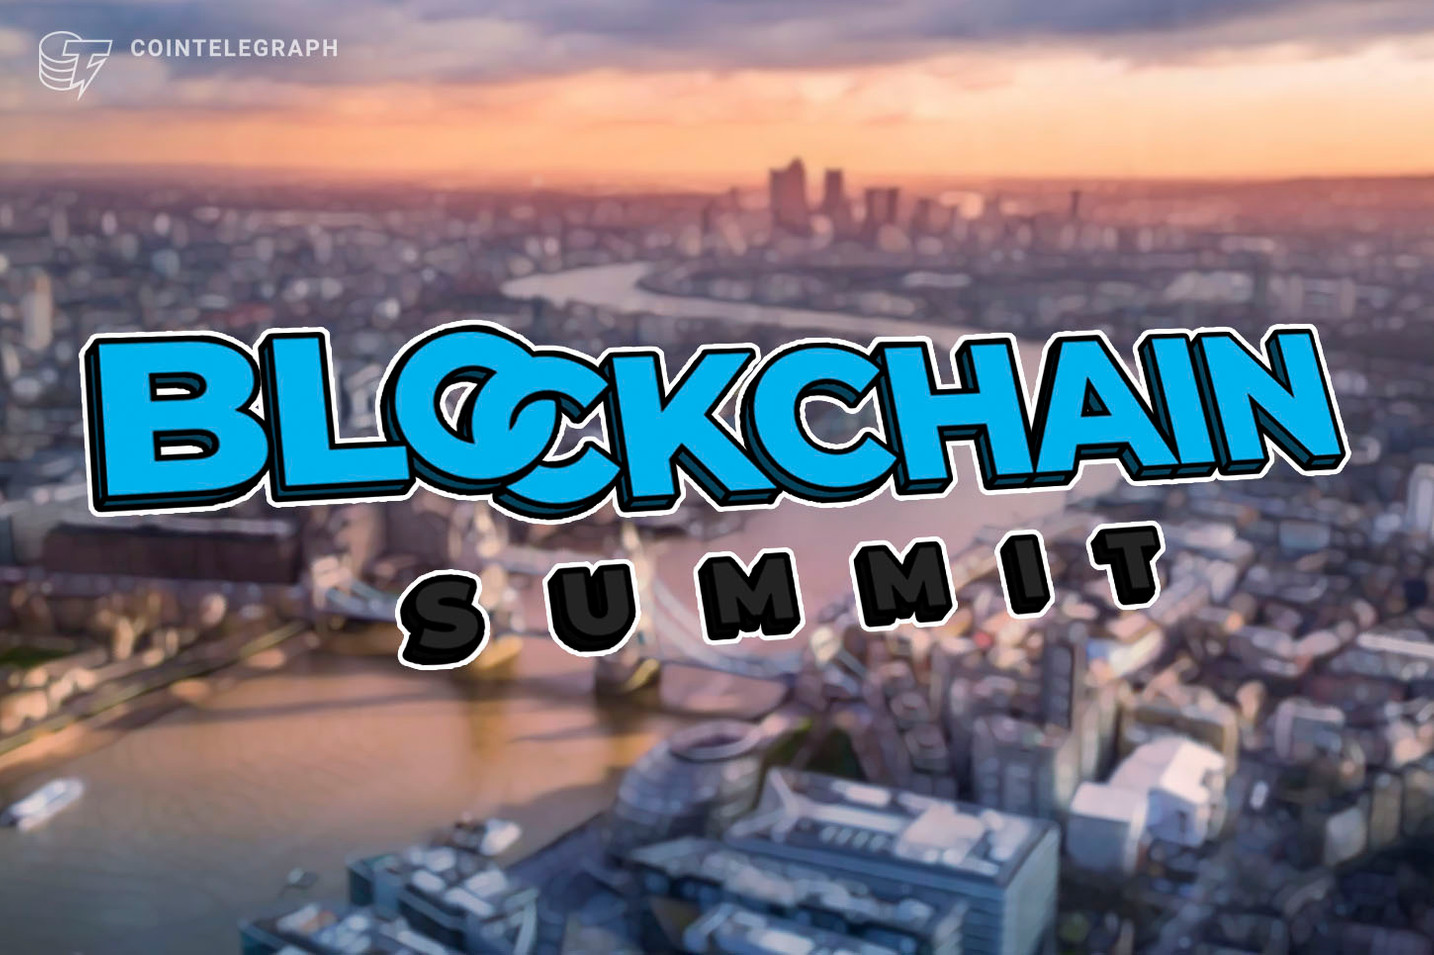 Europe's Leading Blockchain Event Is Back!